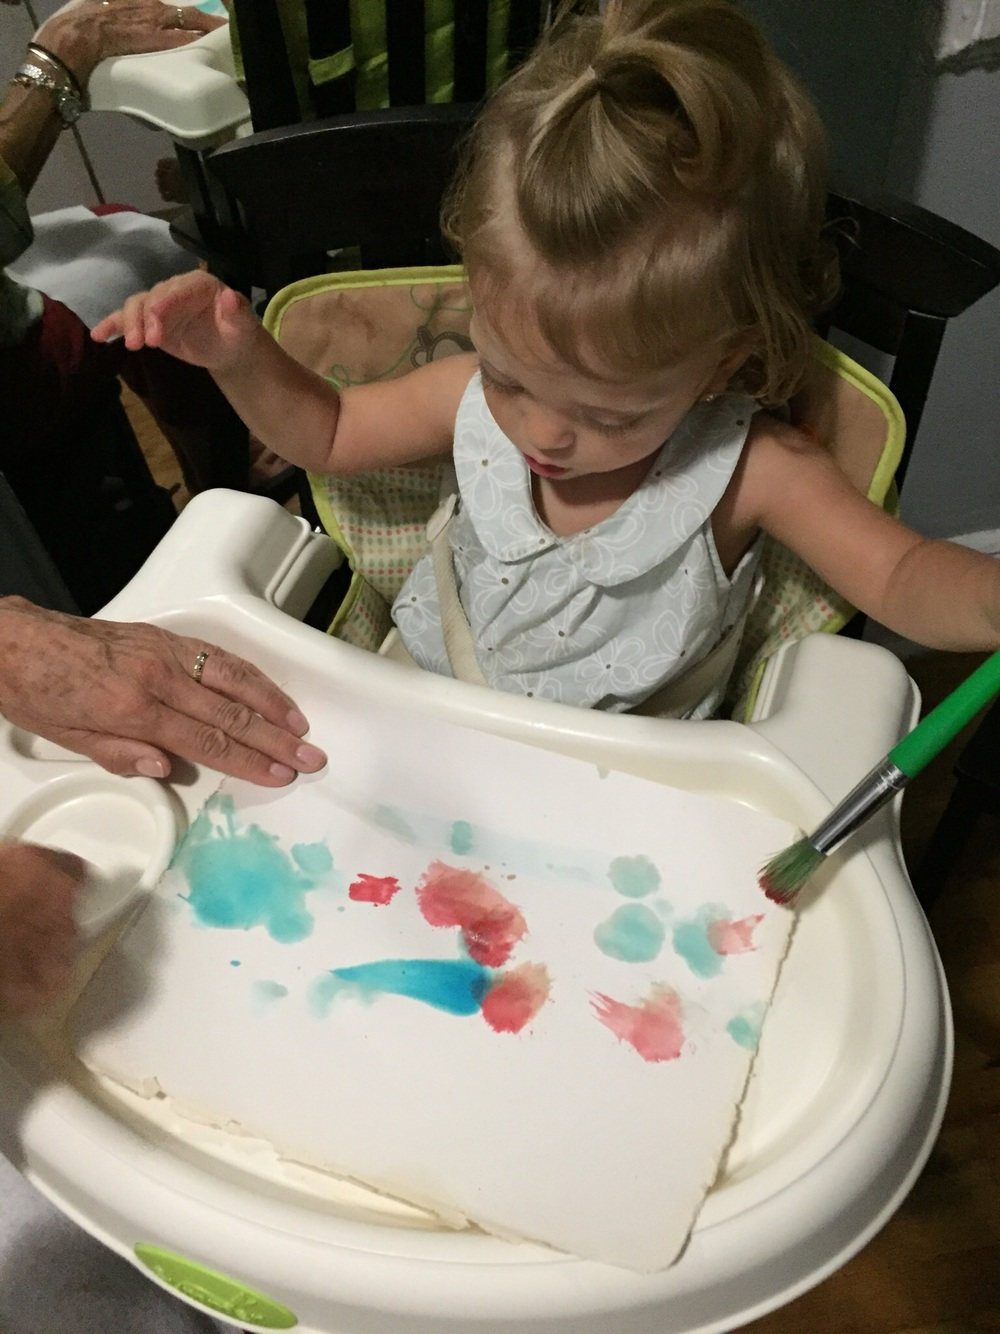 Painting in Special Instruction therapy.